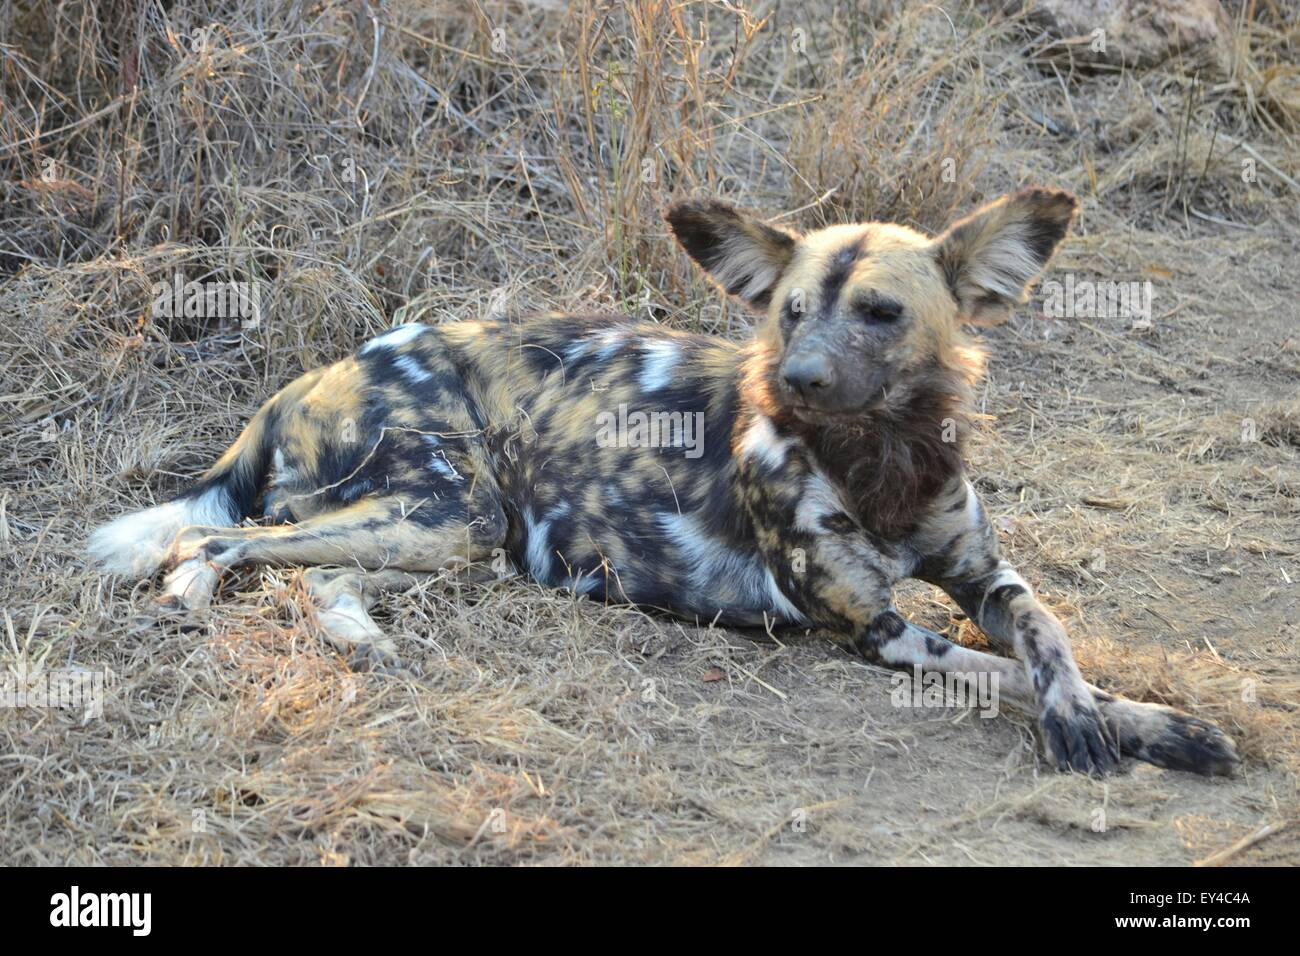 Wild Dog on an African Safari lying very relaxed in the afternoon sunshine. - Stock Image